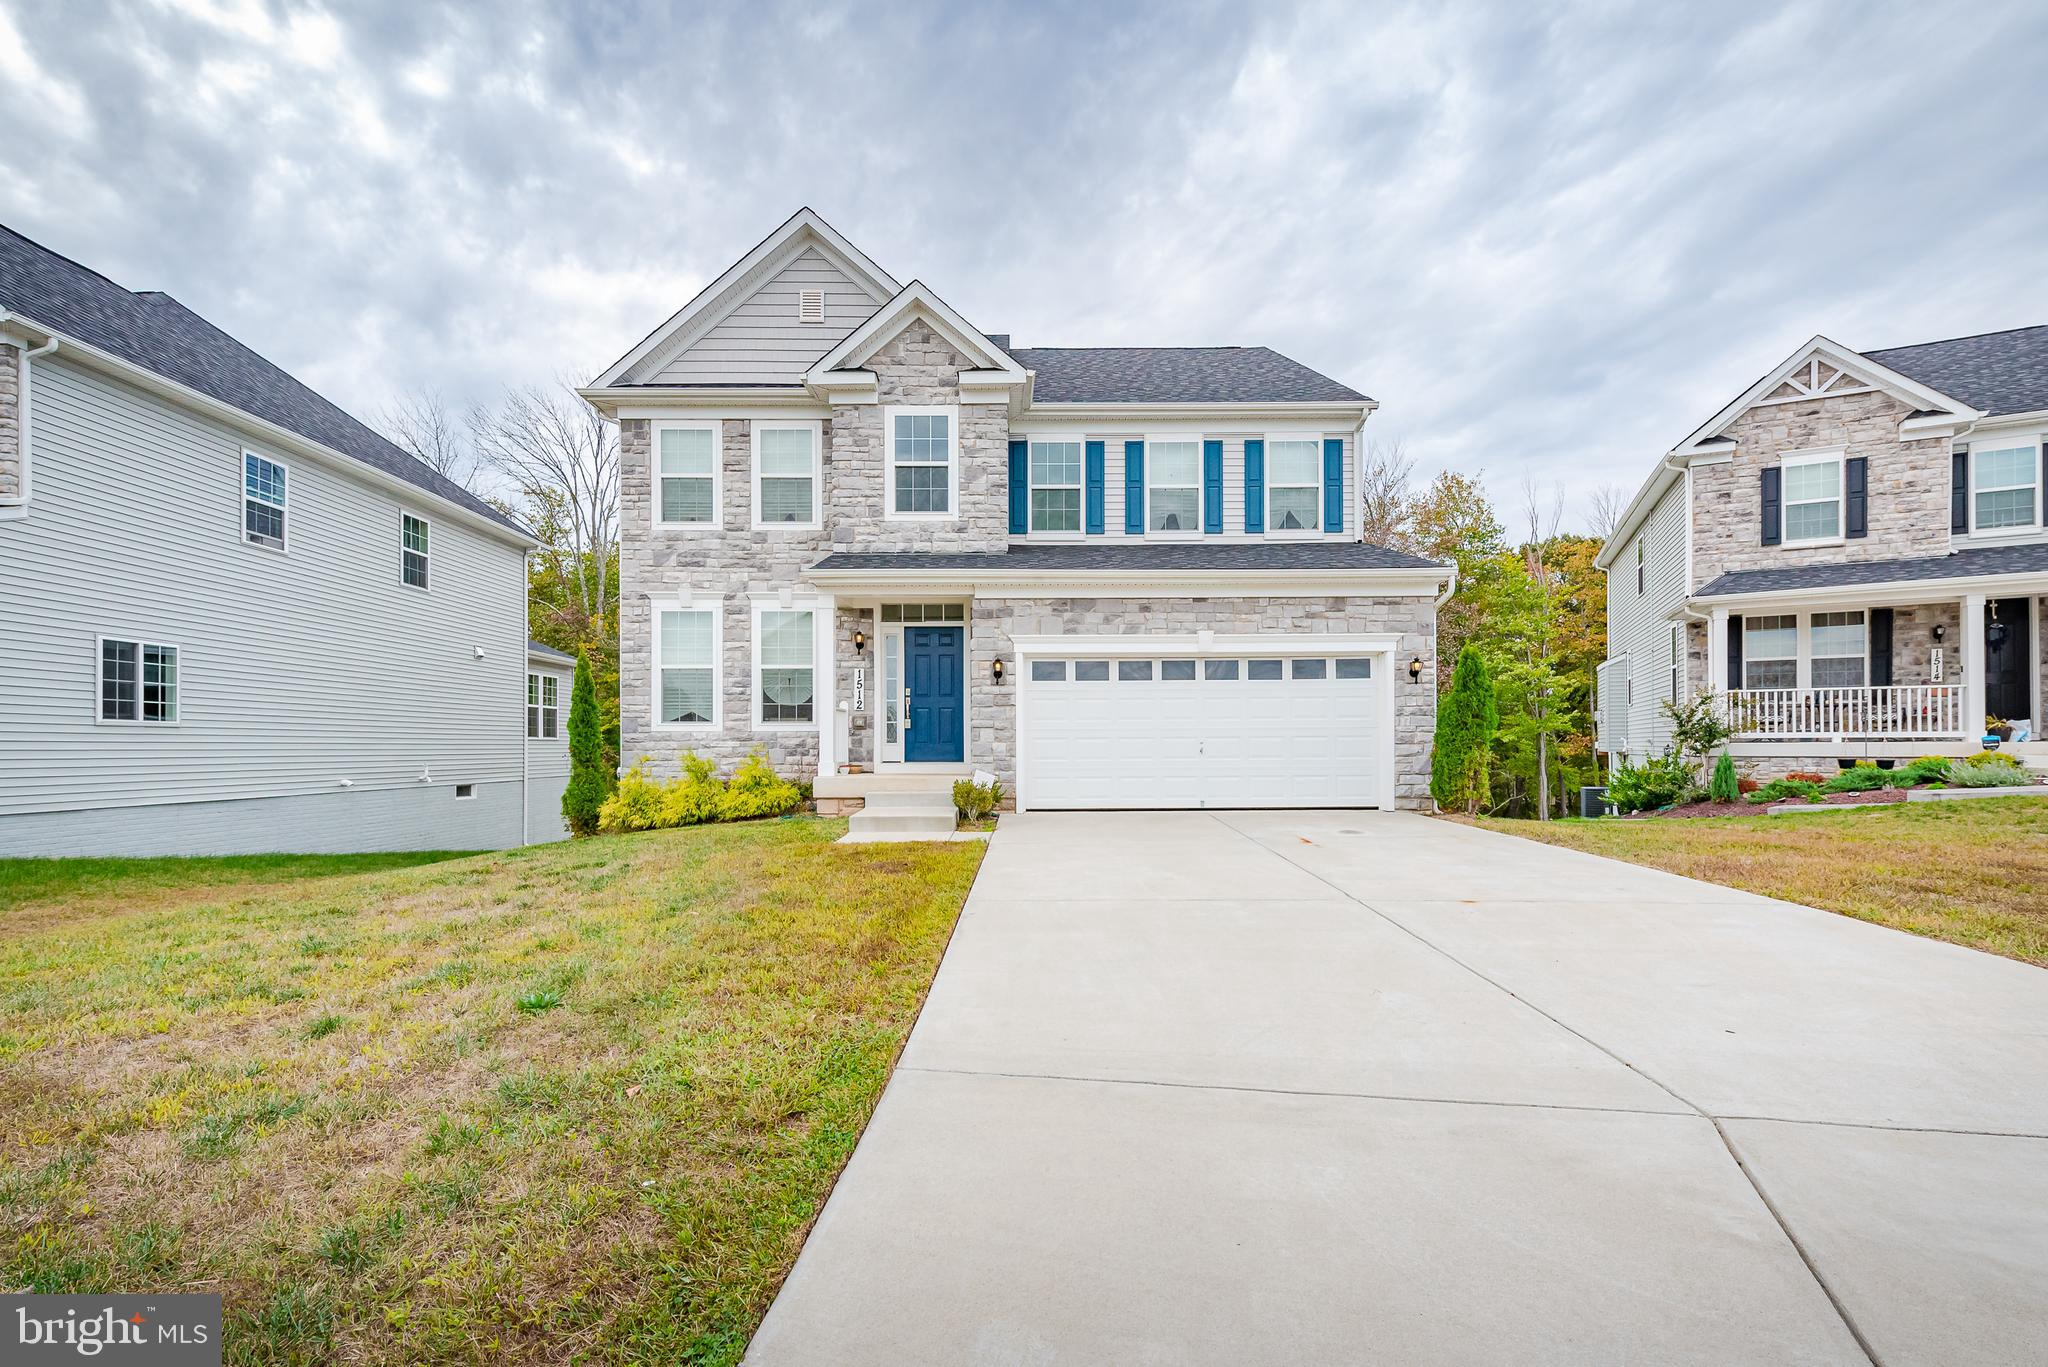 1512 TOUCHARD DRIVE, CATONSVILLE, MD 21228